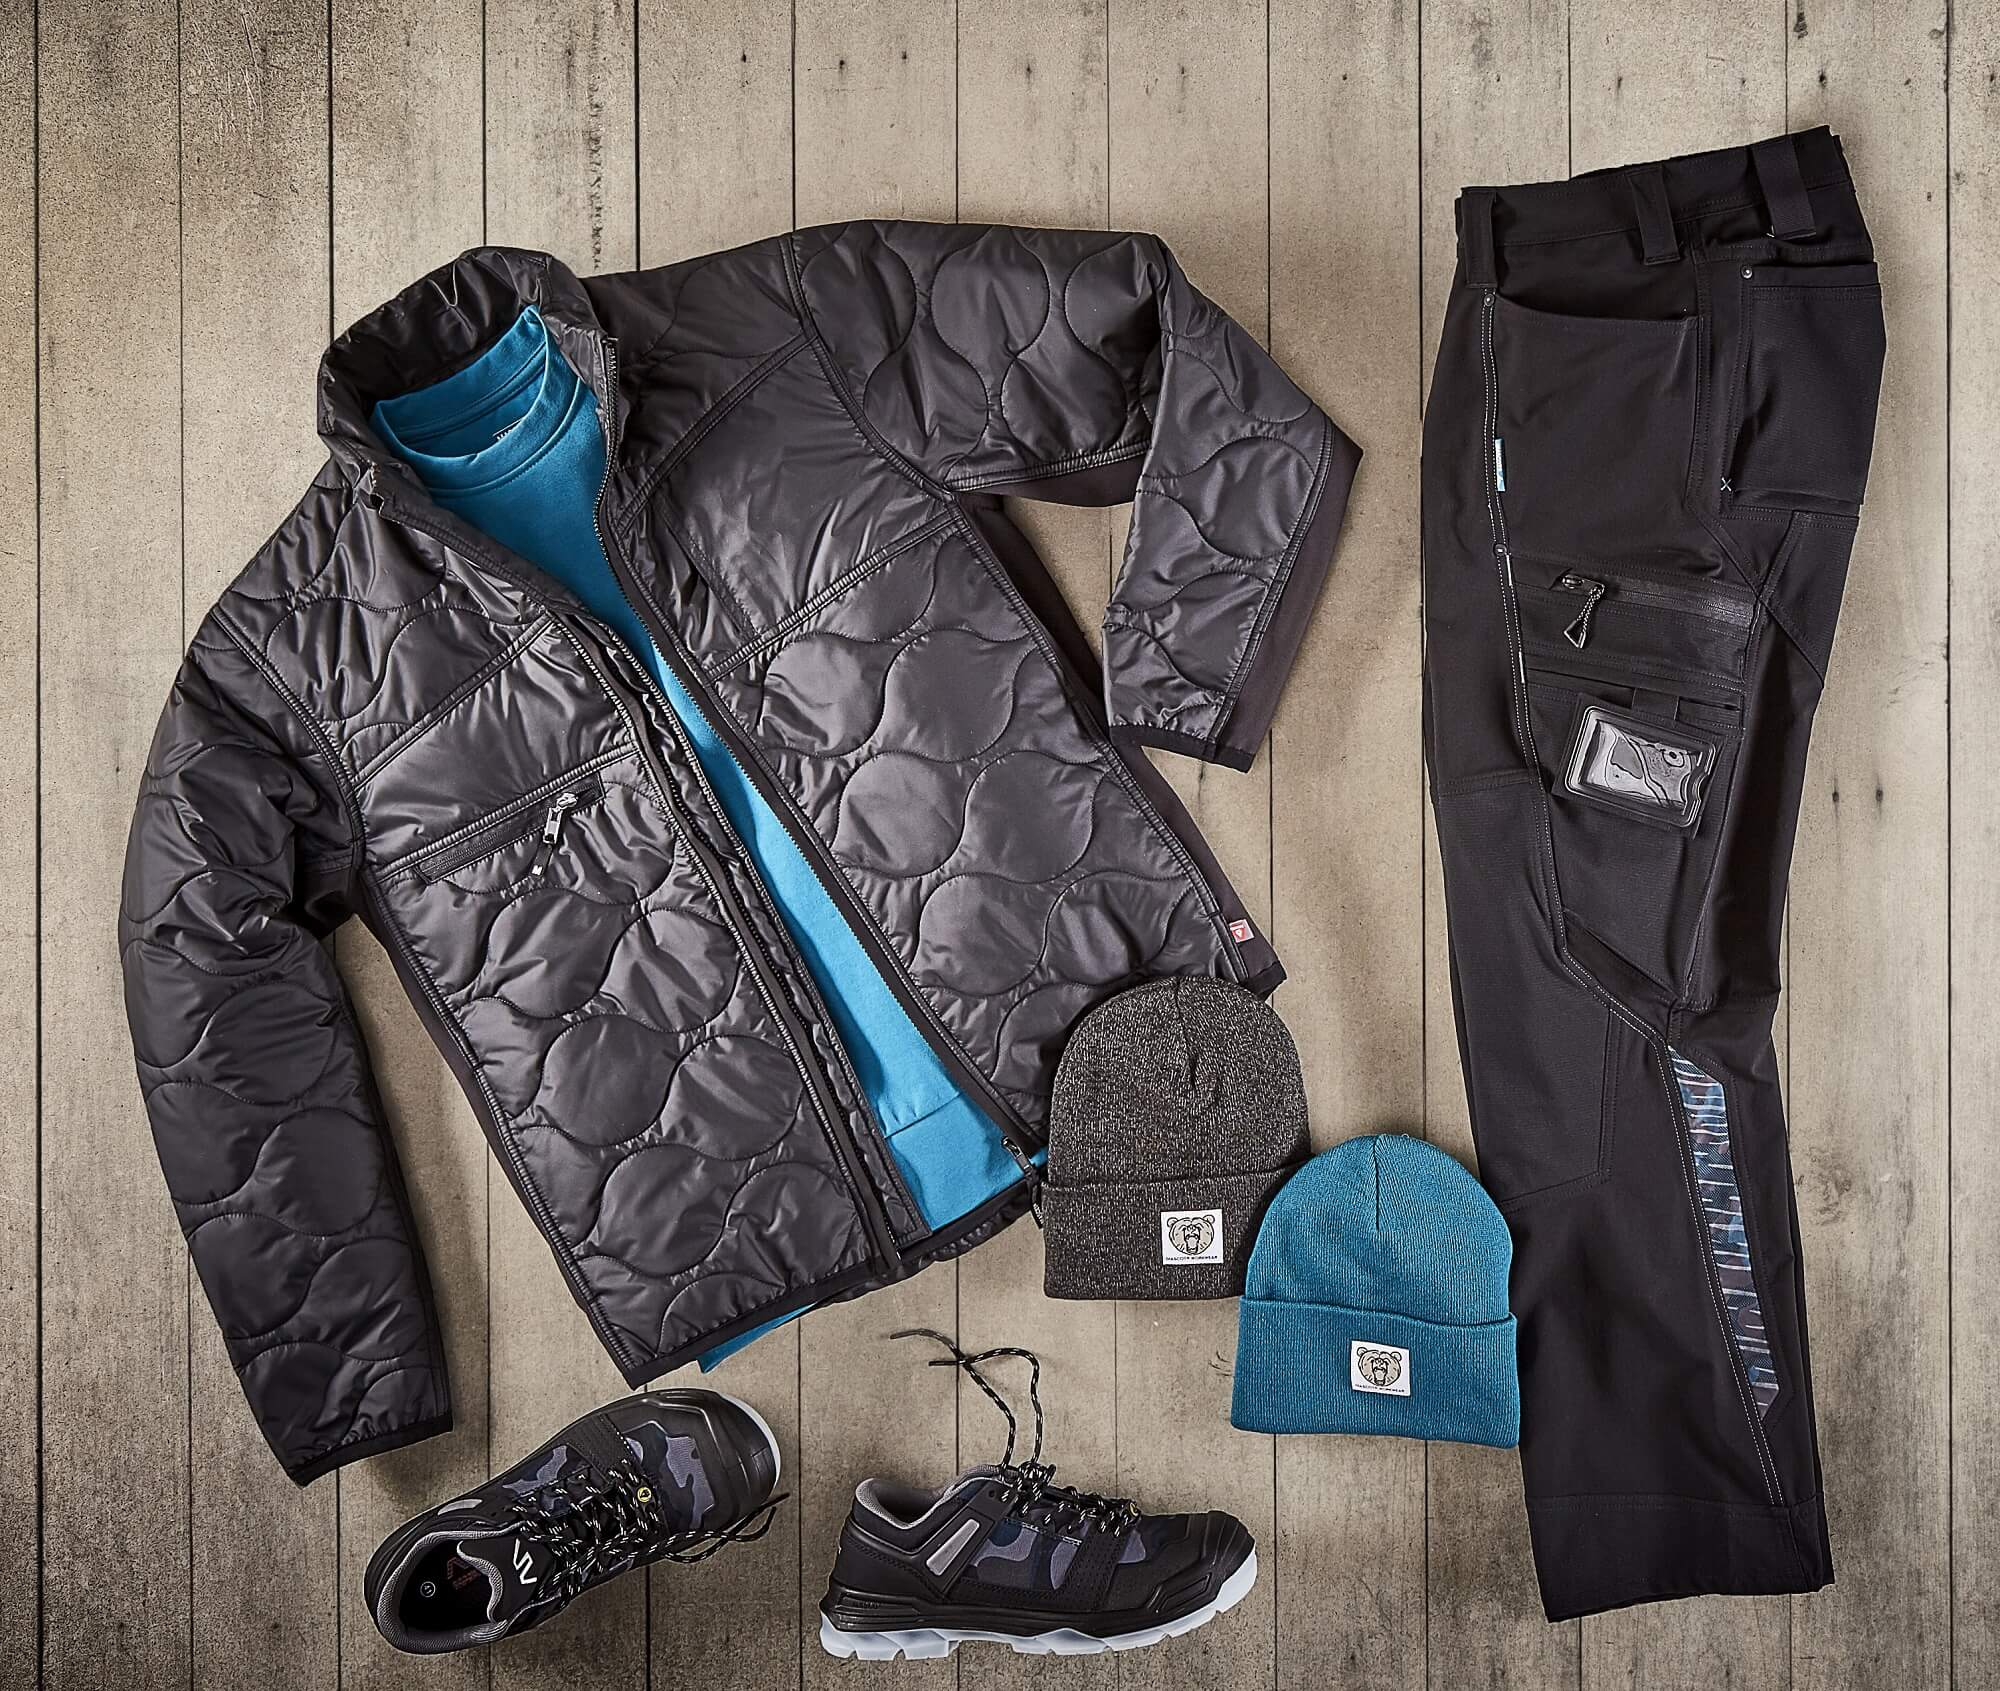 Thermal Jacket, STRETCH Trousers & Knitted Hats - Black - Collage